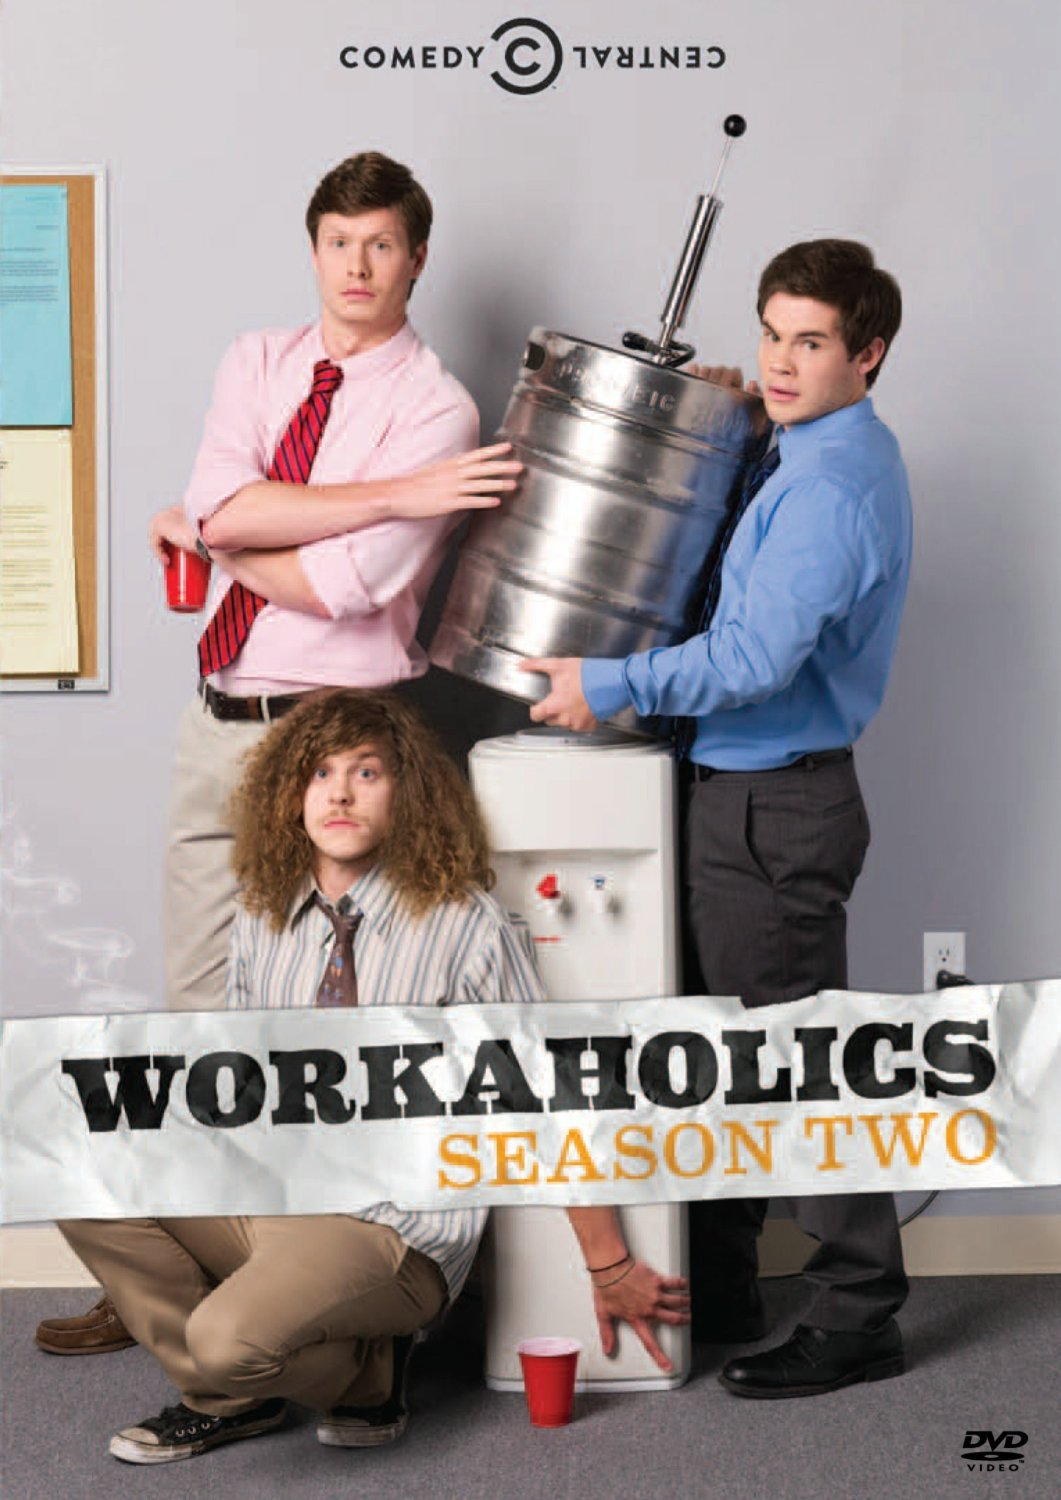 Workaholics - Season 2